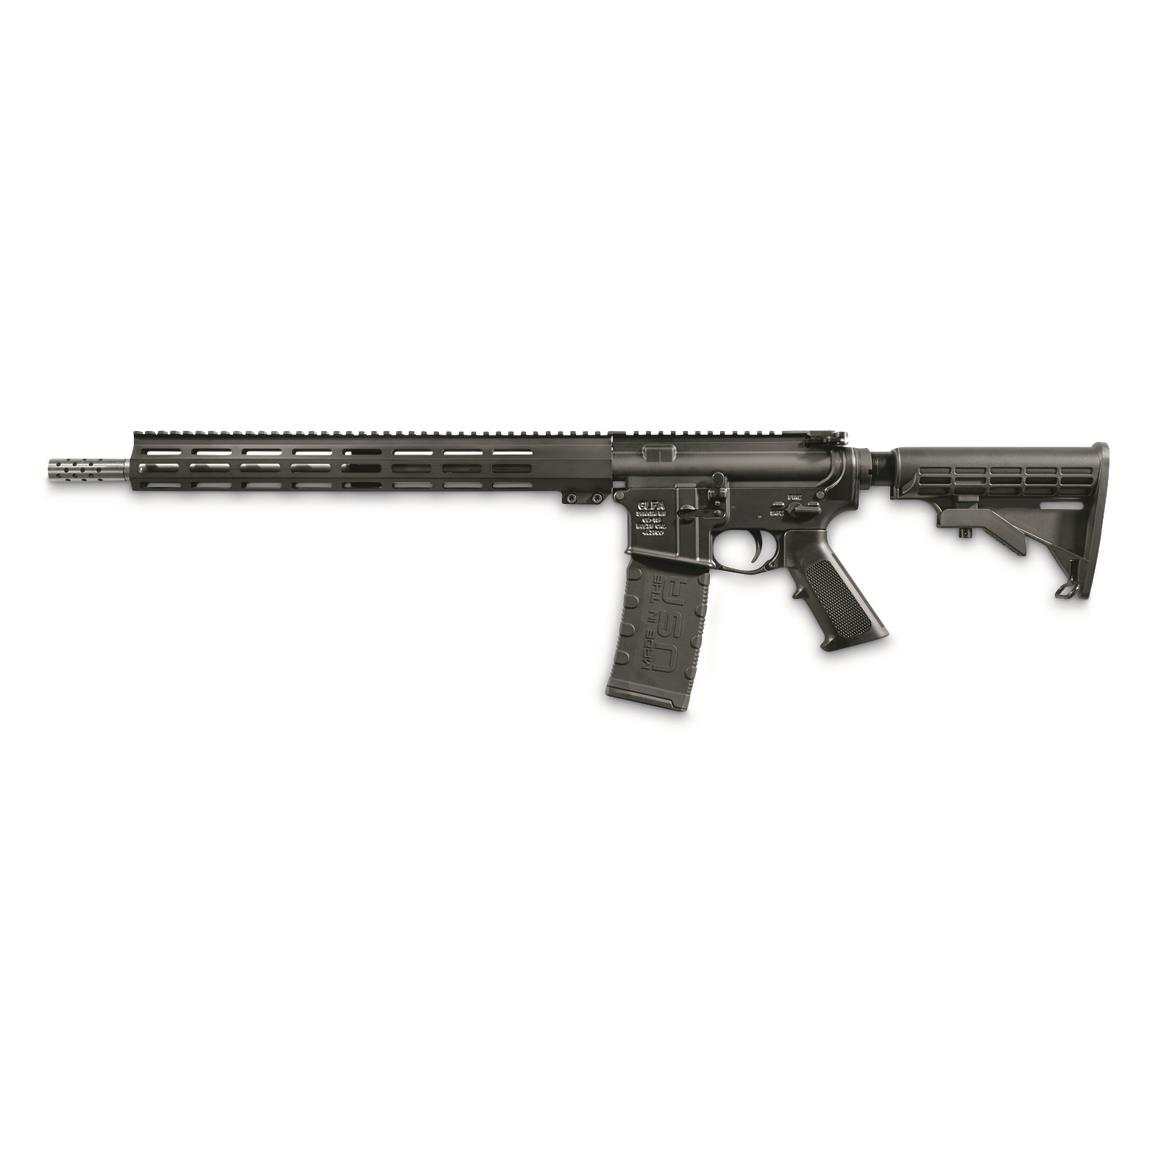 GREAT LAKES FIREARMS A-15 RIFLE-G223BLKSS